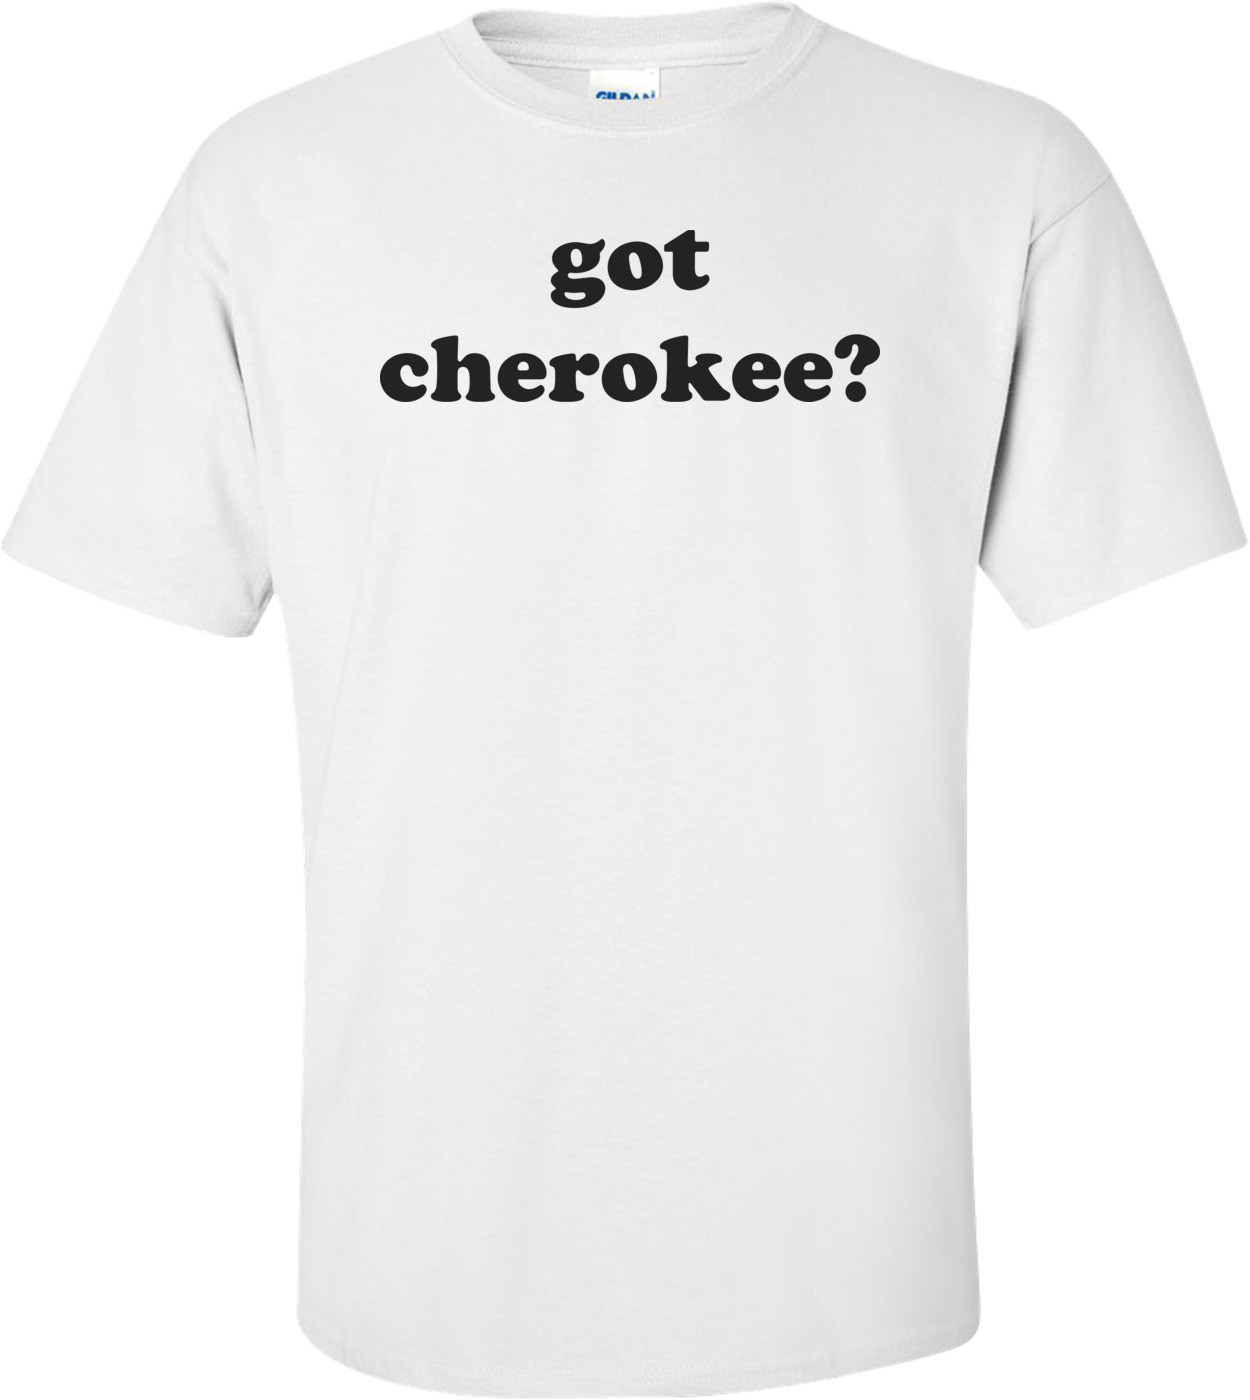 Got Cherokee? Shirt